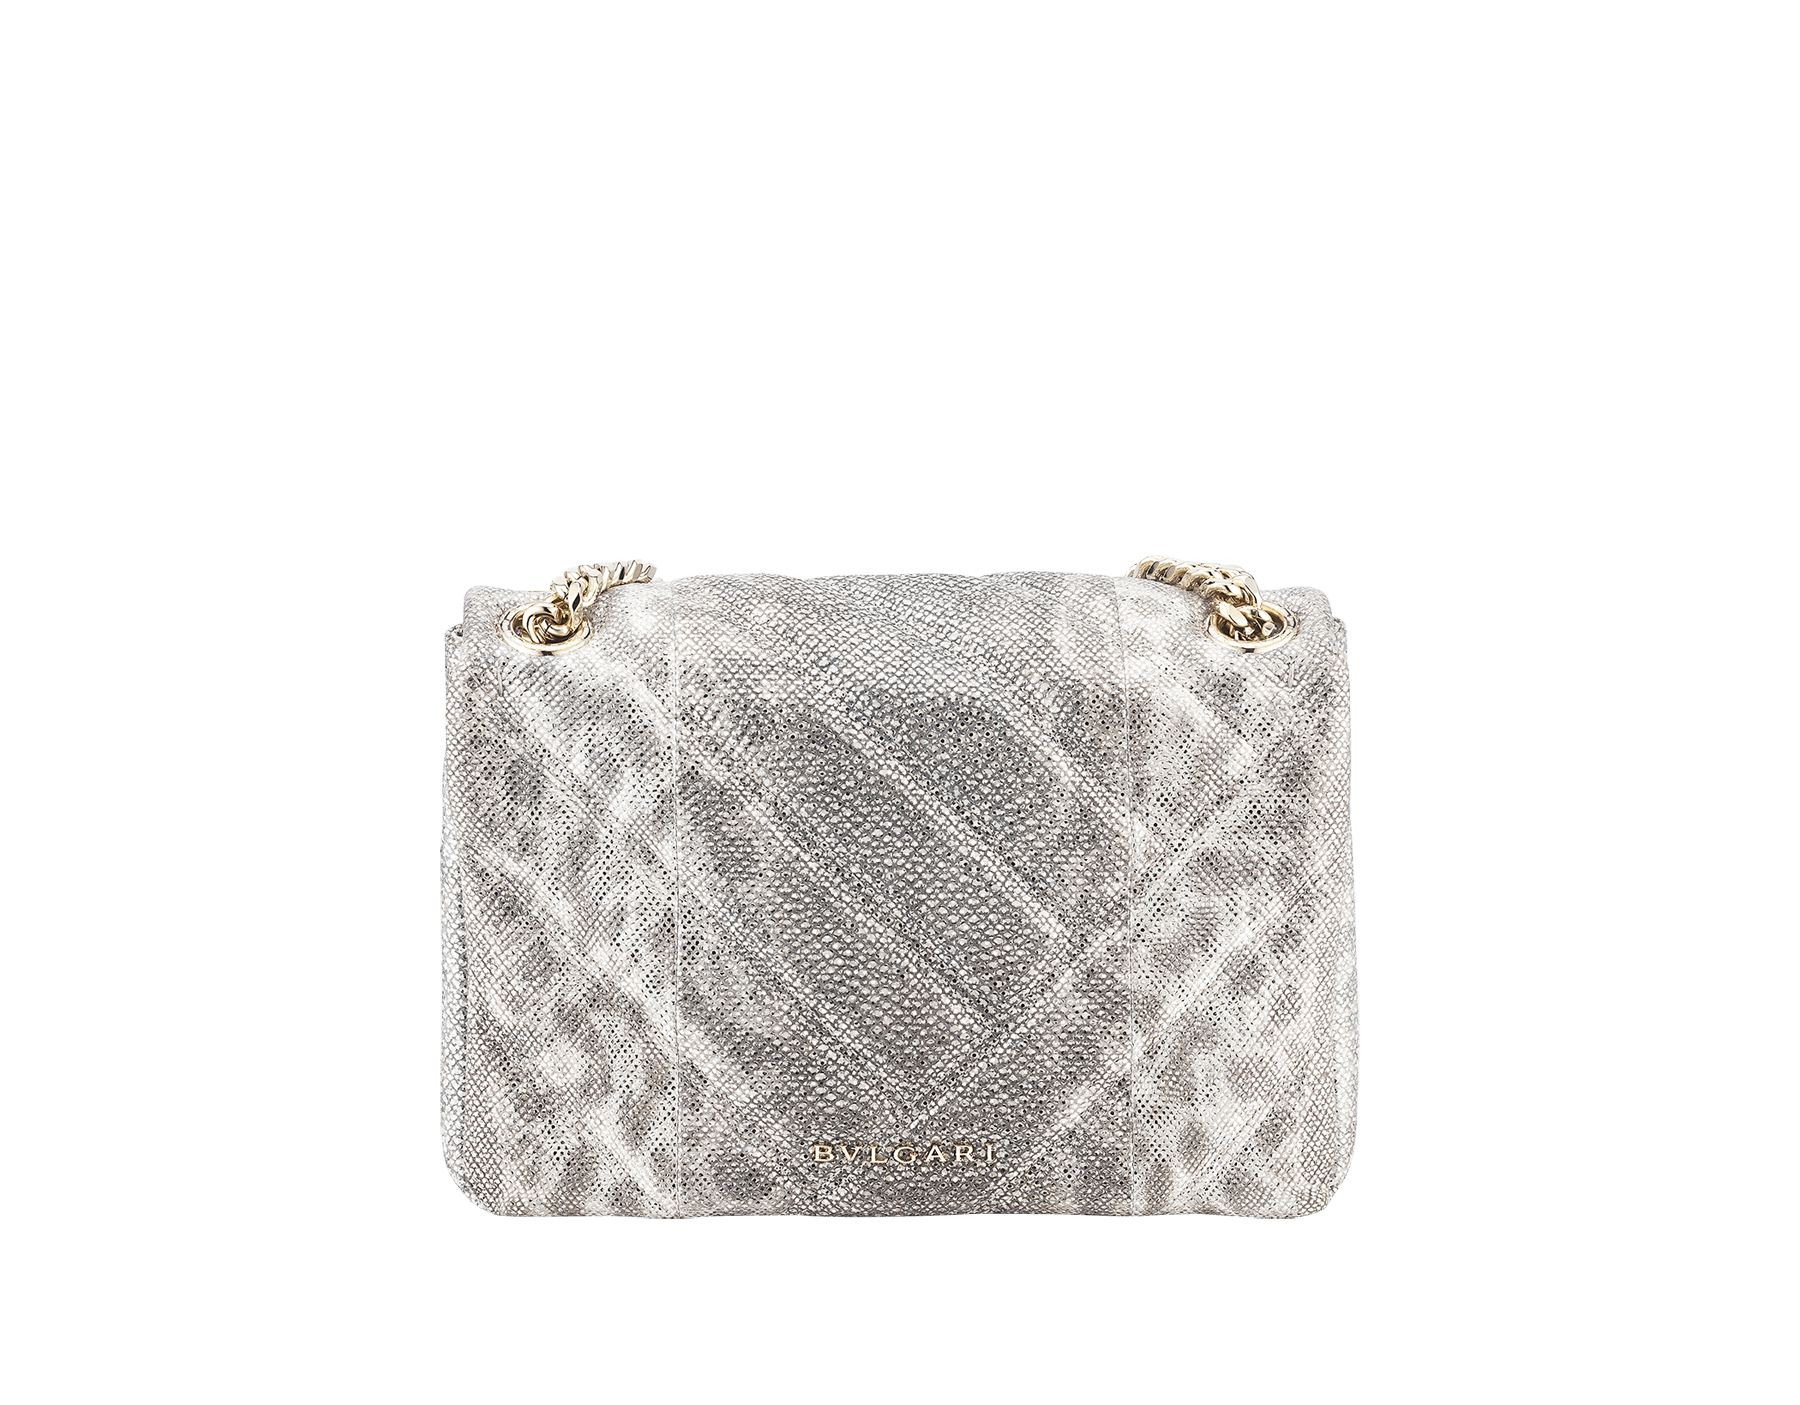 Serpenti Cabochon shoulder bag in soft quilted white agate metallic karung skin, with a graphic motif. Light gold brass plated tempting snake head closure in matte black and glitter white agate enamel, with black onyx eyes. 288805 image 3